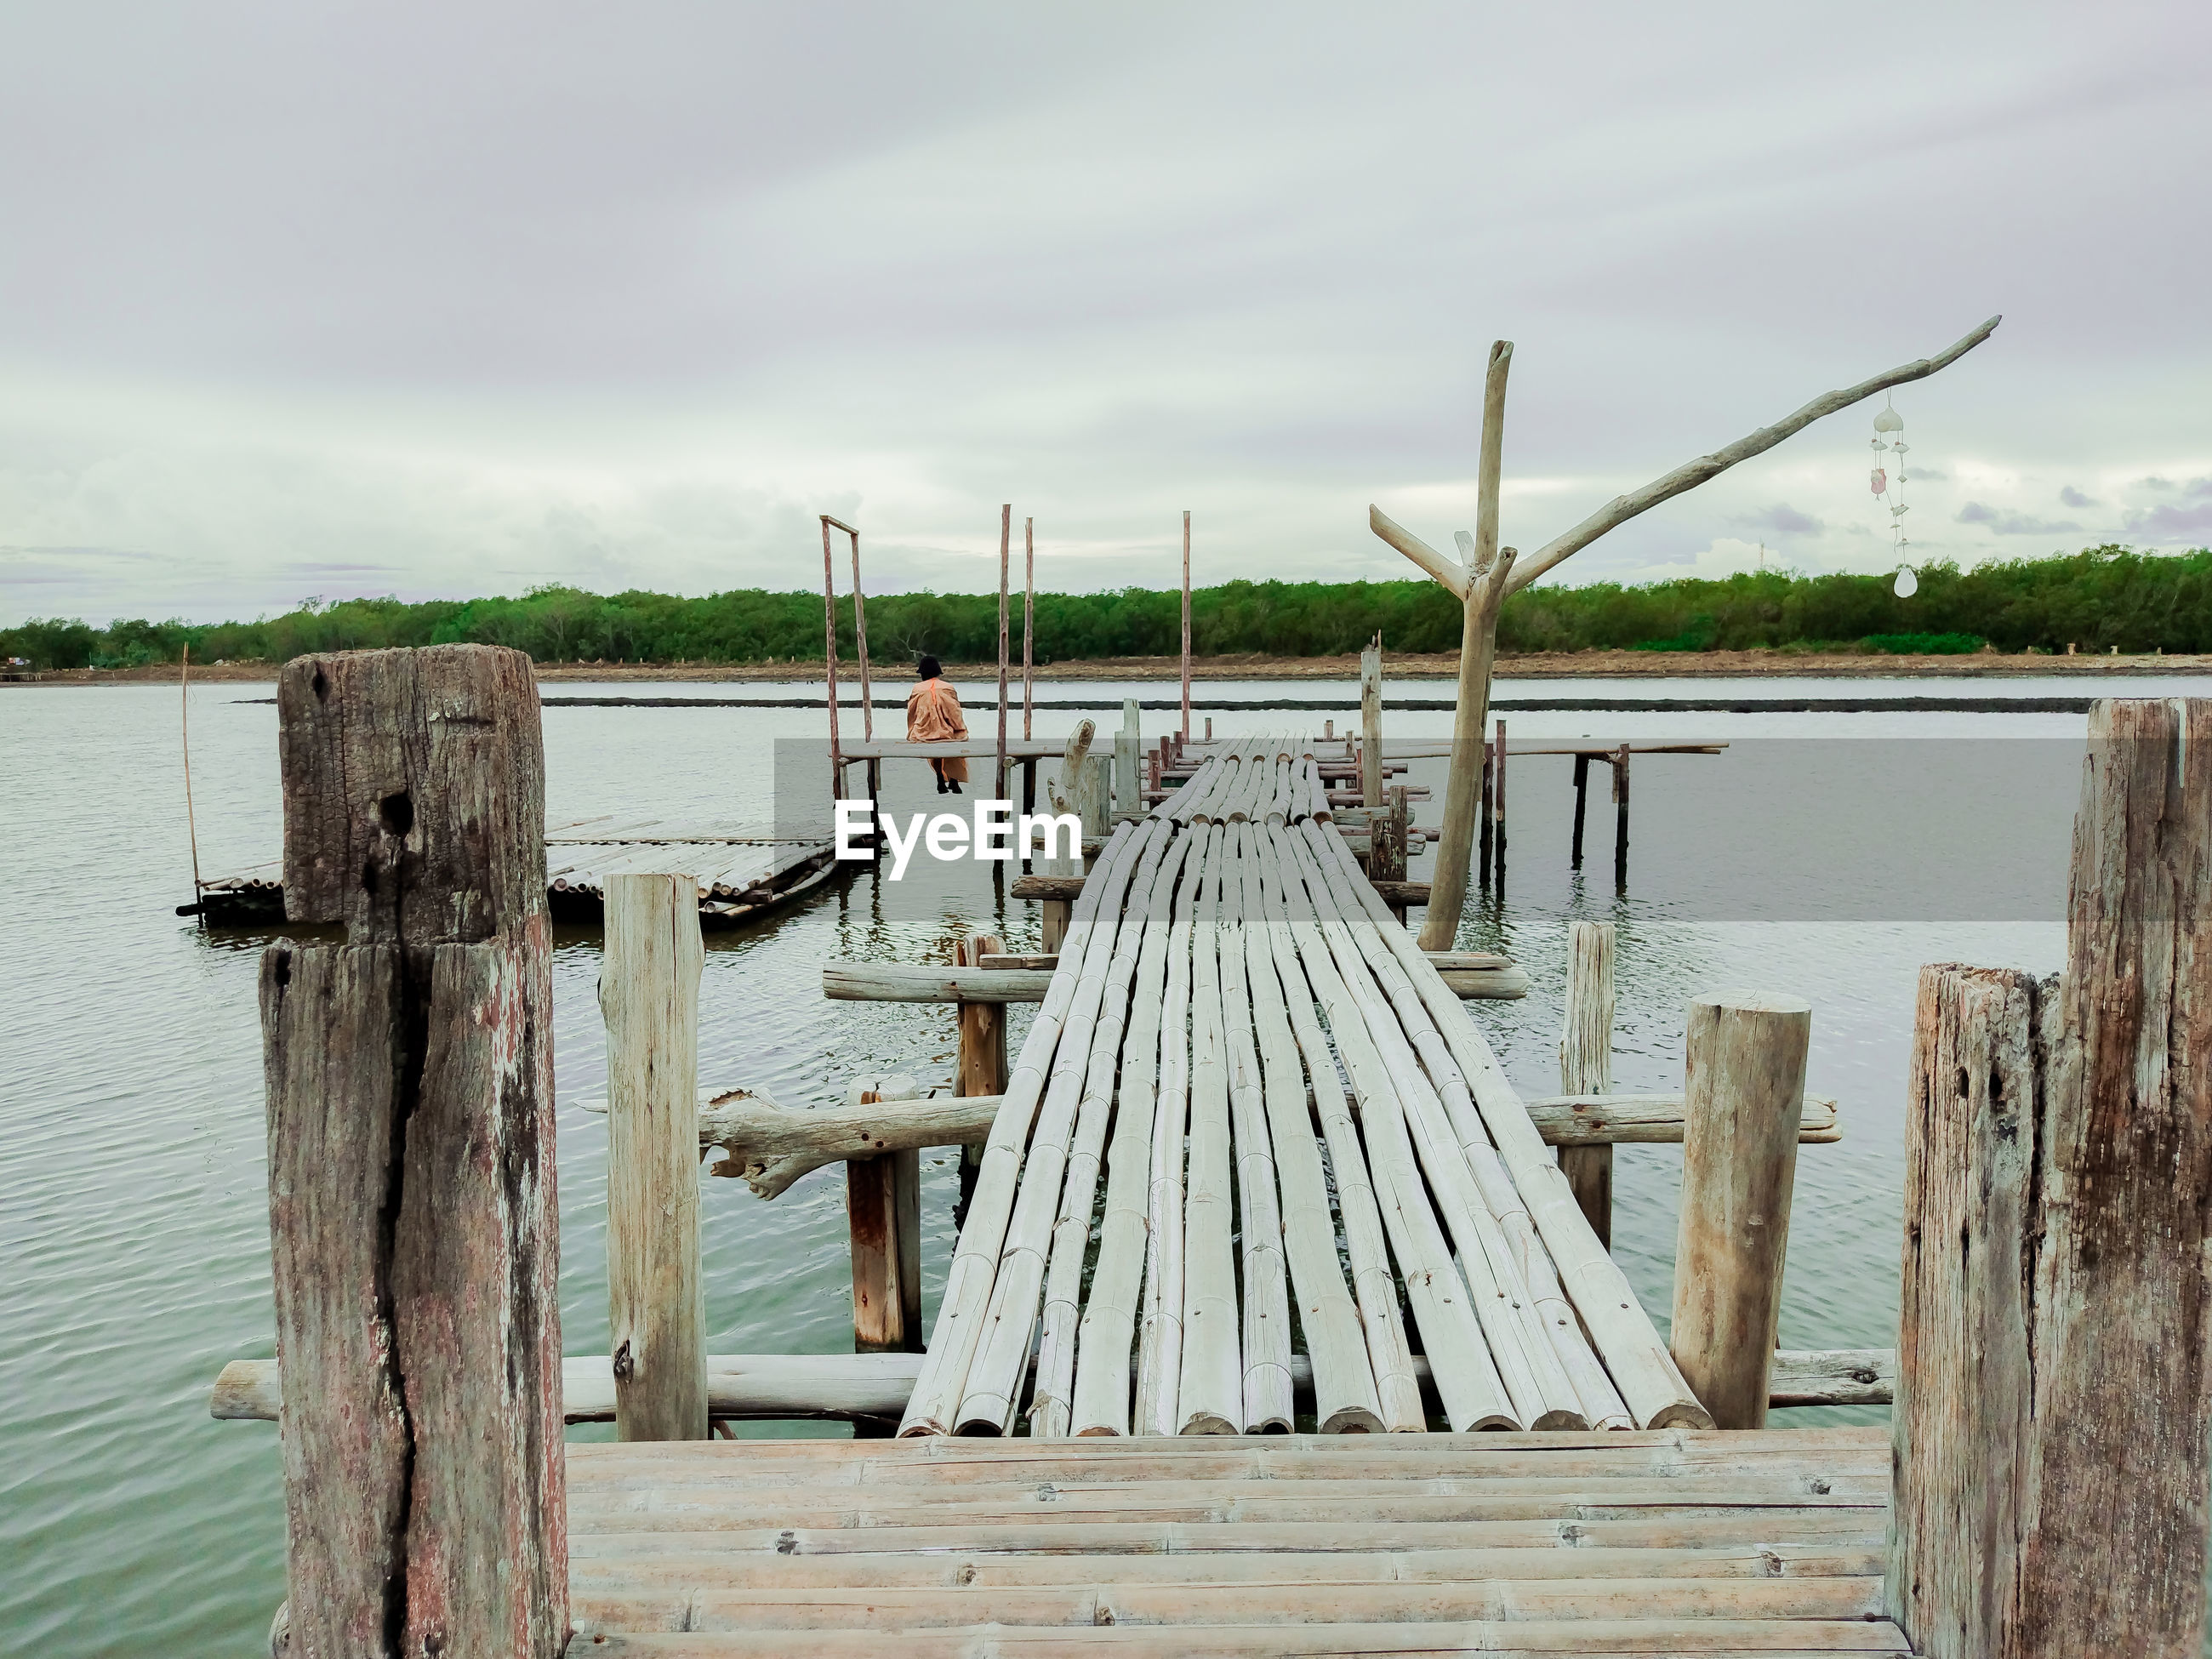 A woman sitting at a wooden bridge by the sea